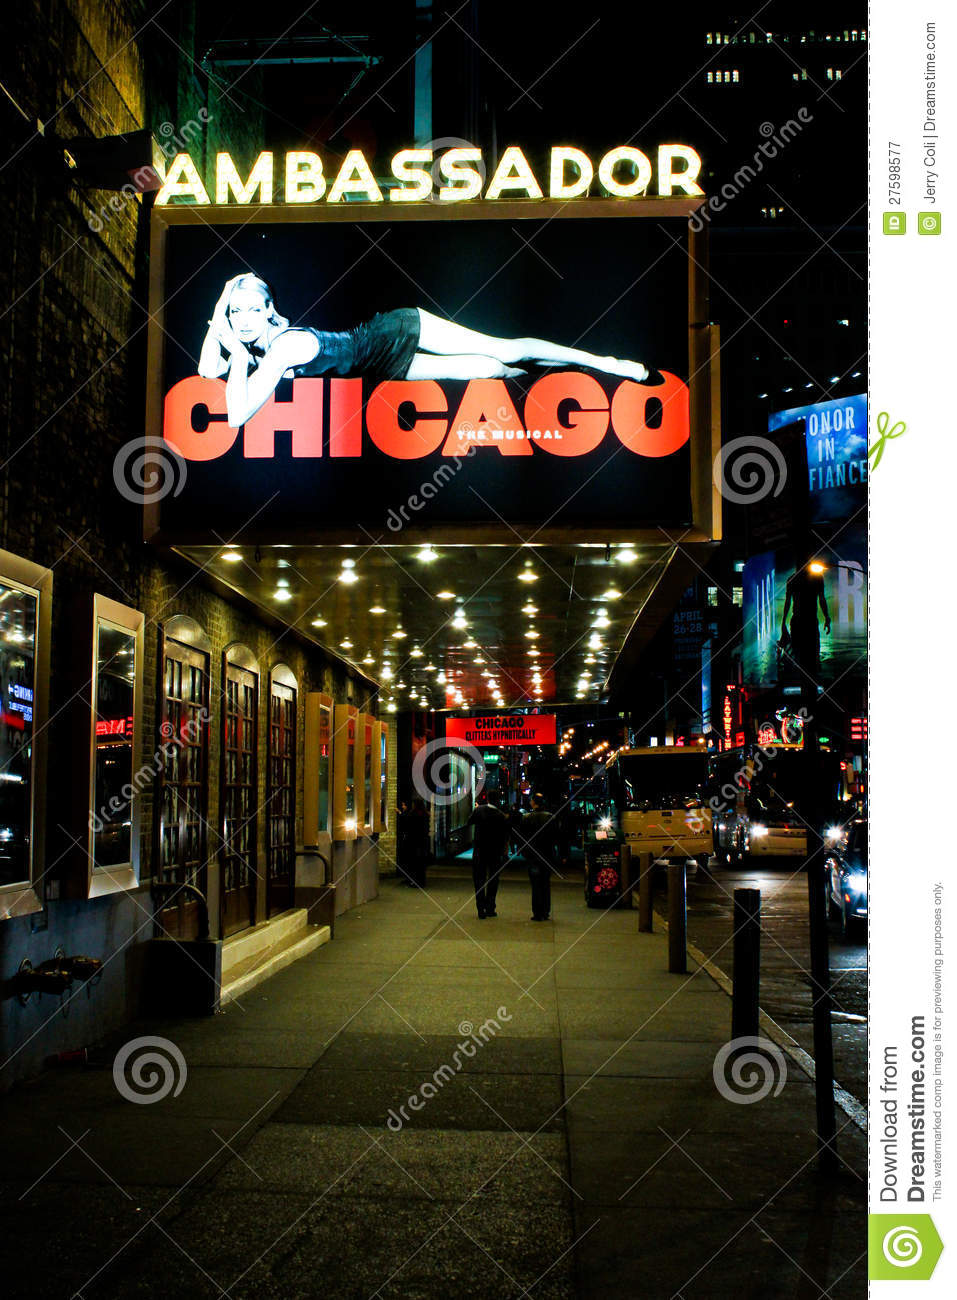 Ambassador Theater home of